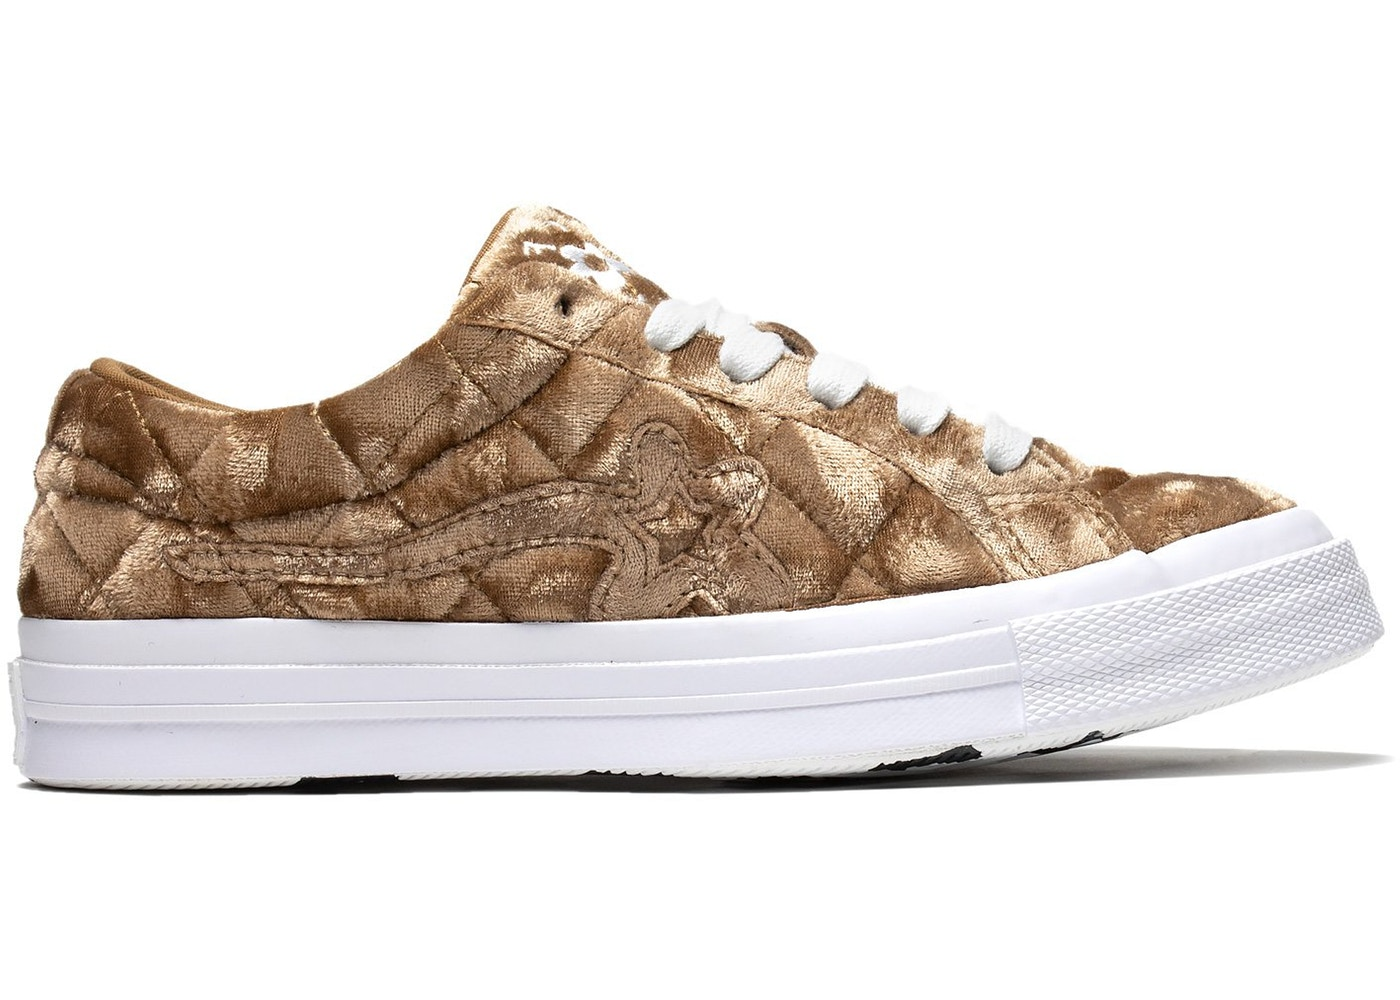 a49356a8c6d Converse One Star Ox Golf Le Fleur TTC Quilted Velvet Brown Sugar - 165599C